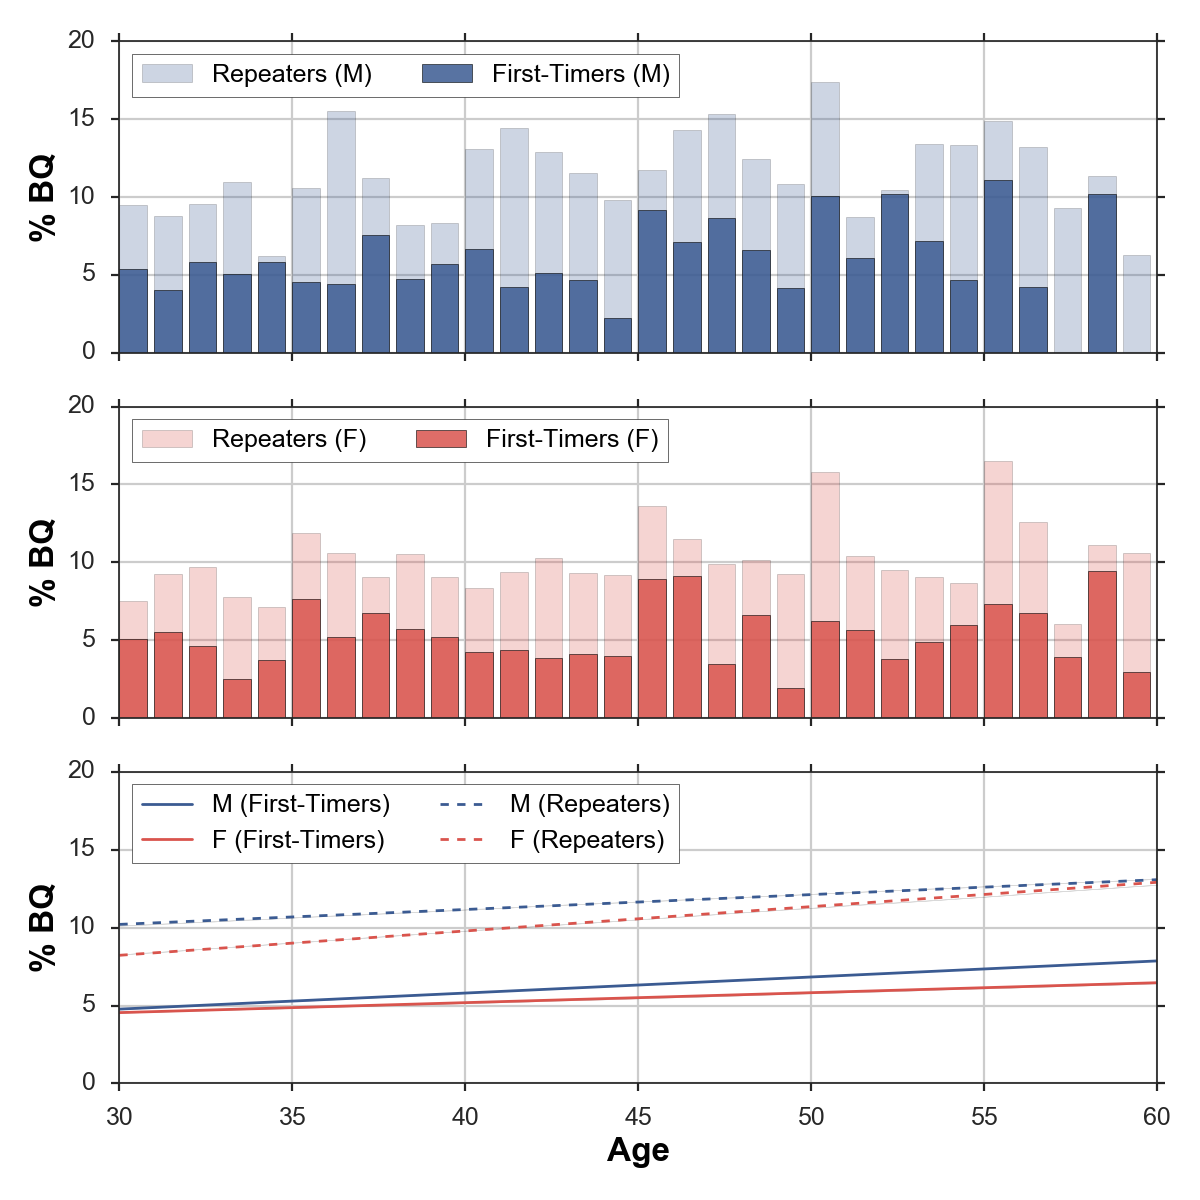 The Point Is That Using These Bq Thresholds We Can Evaluate How Runners In Diffe Age Groups Are Performing Relatively To One Another By Calculating